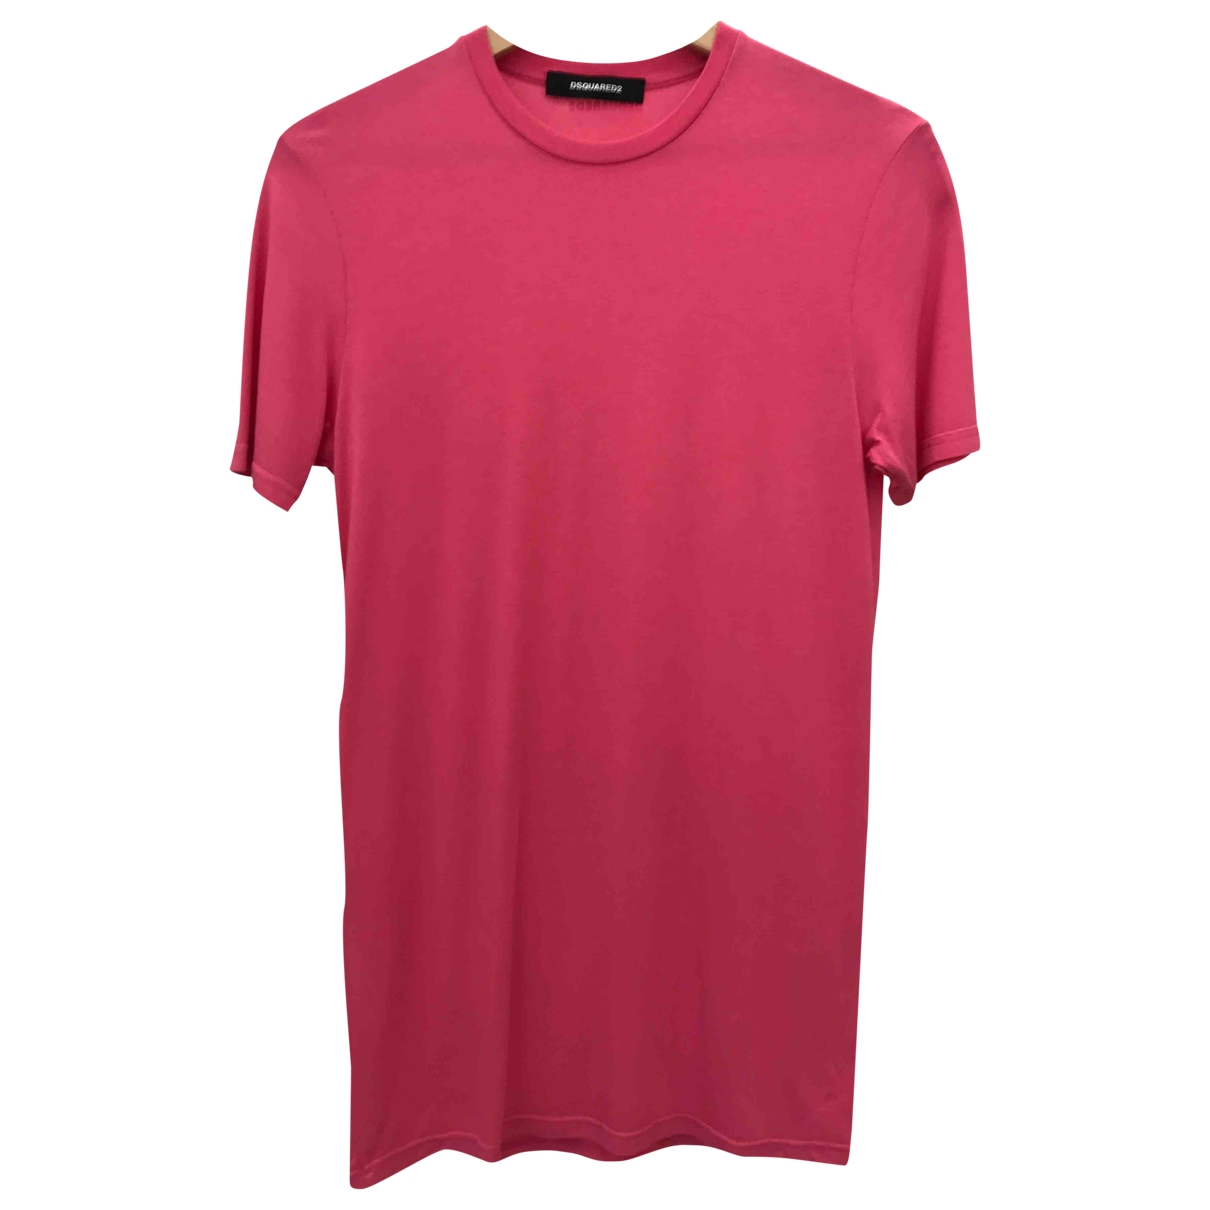 Dsquared2 \N Pink  top for Women S International